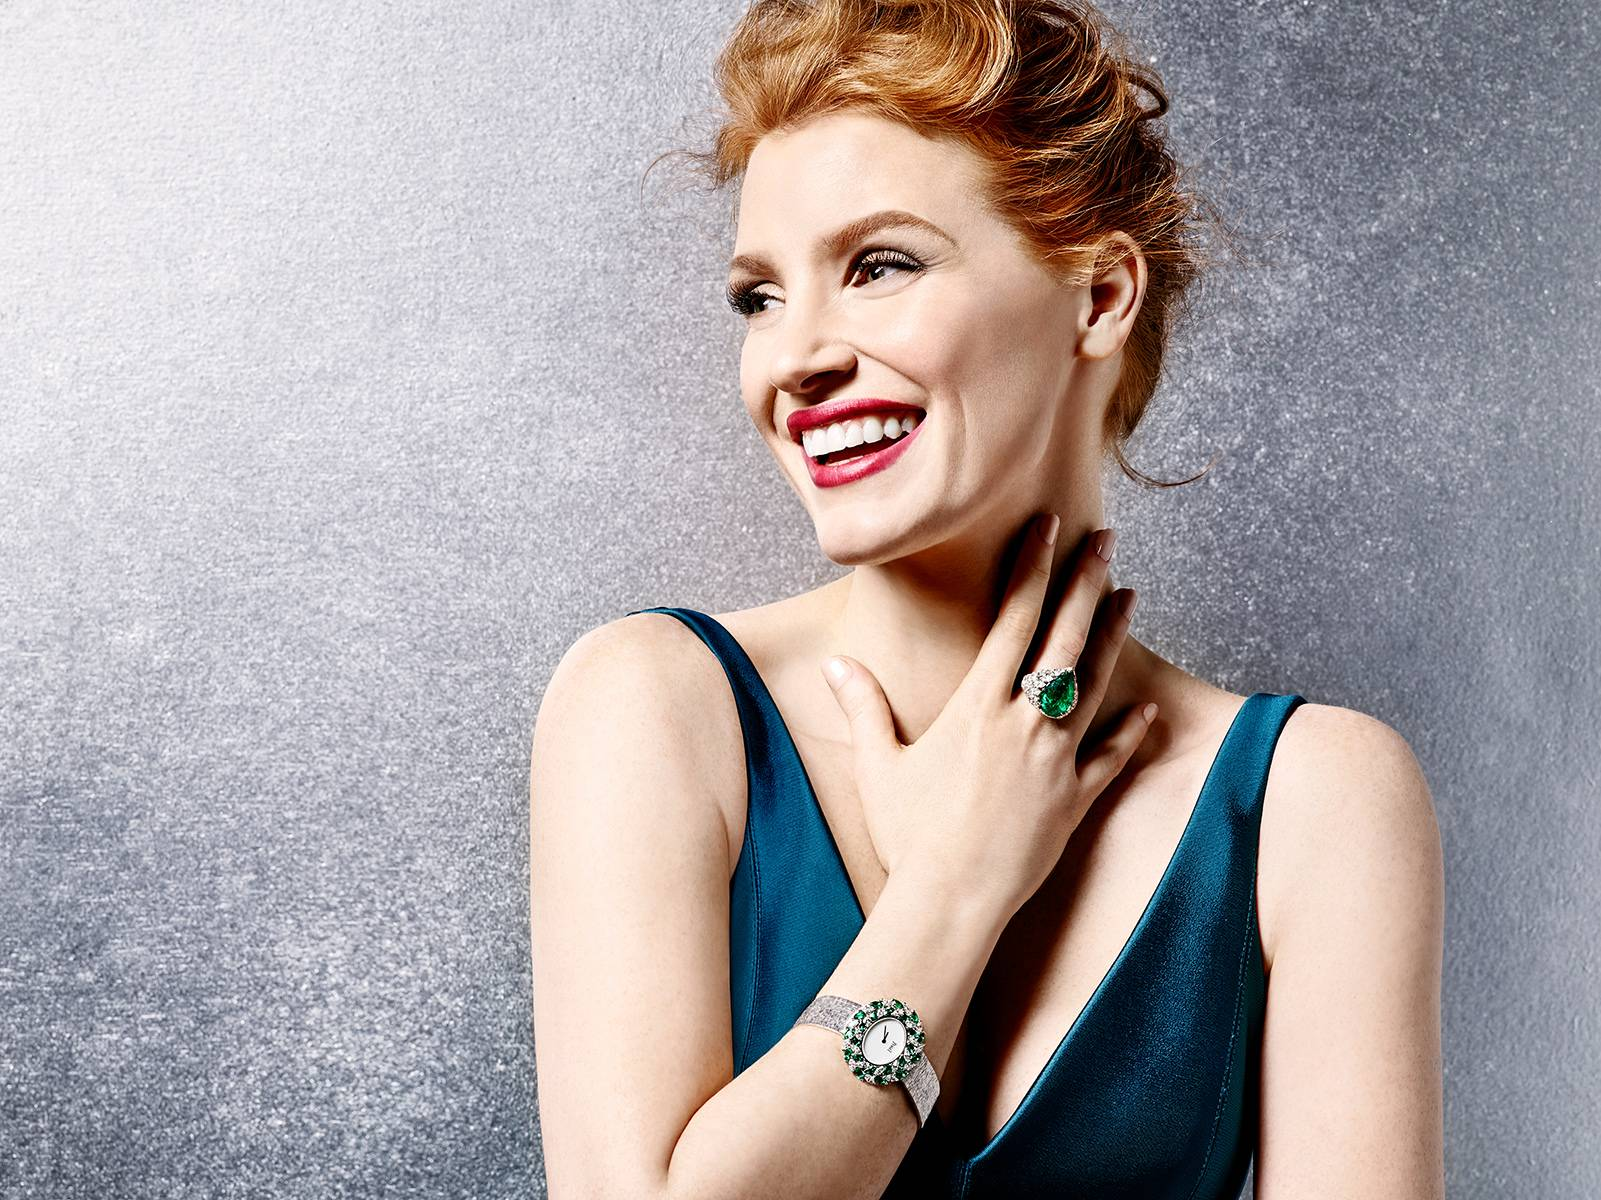 Jessica Chastain - James White Photoshoot 2016 for Piaget